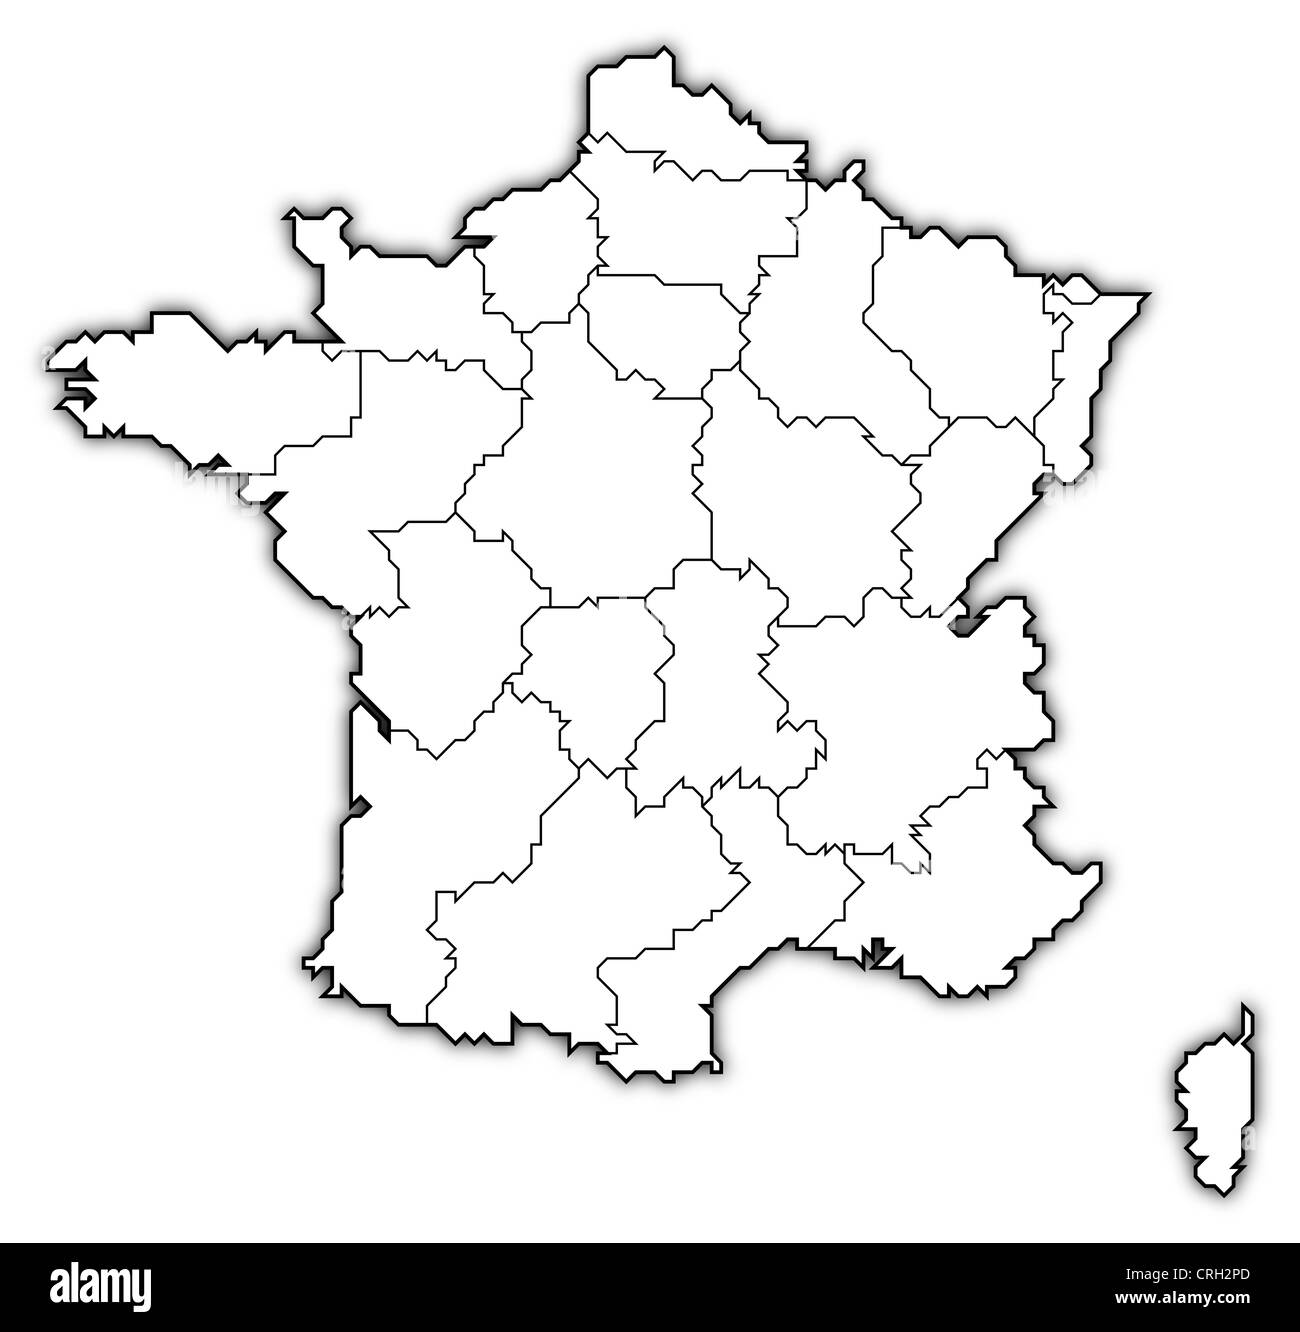 Political Outline Map Of France.Political Map Of France With The Several Regions Stock Photo